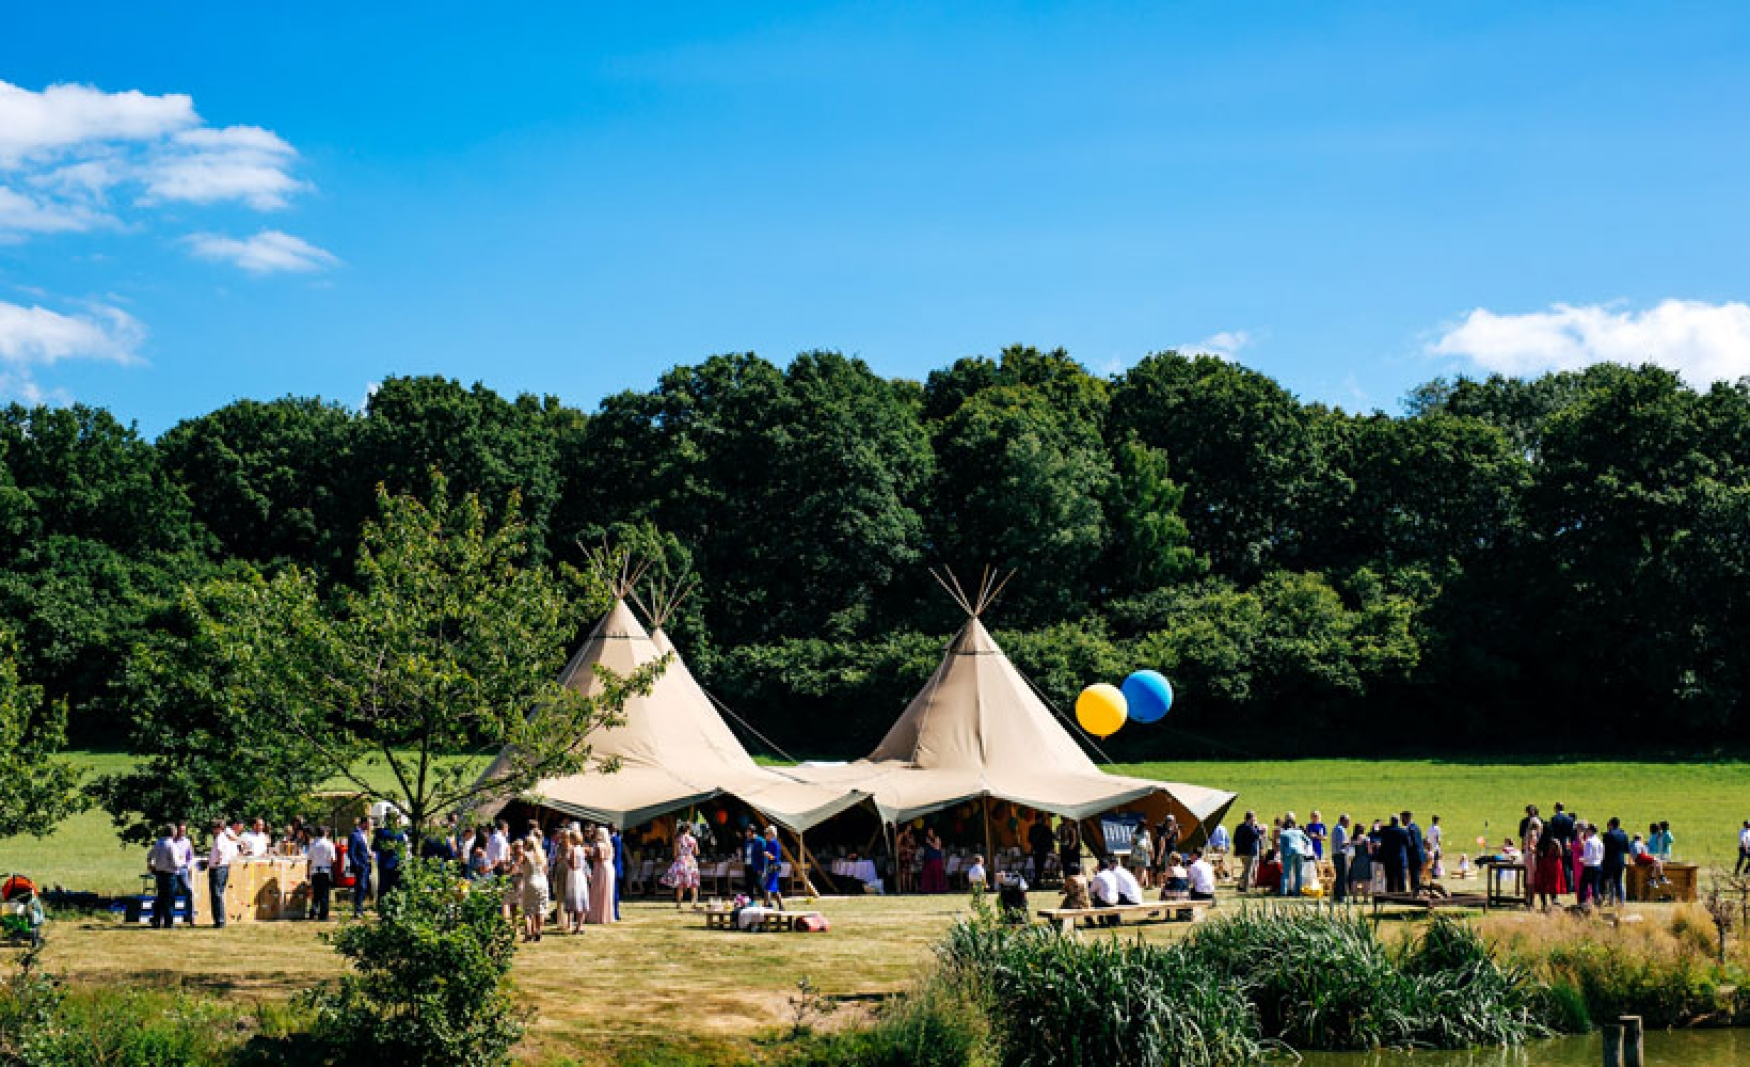 fiesta-fields-outdoor-wedding-events-company-tipi-surrey-sussex-maplehurst-farm-nuthurst